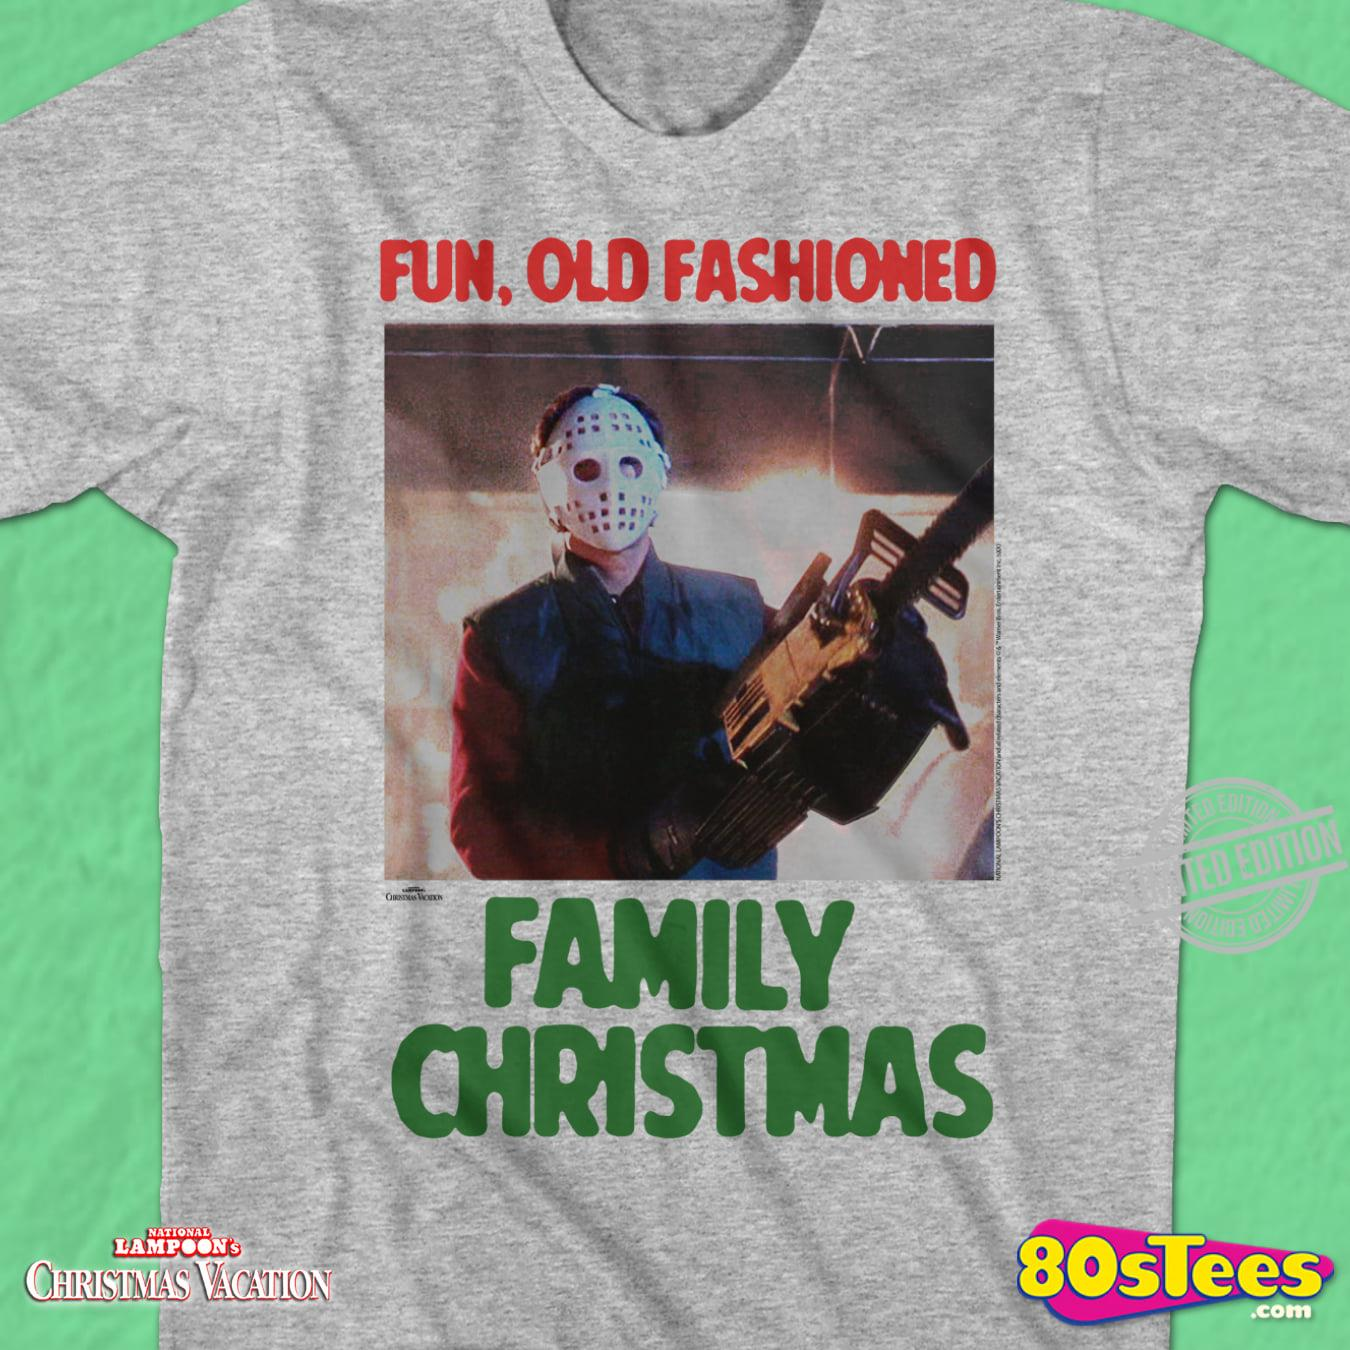 Fun, Old Fashioned Family Christmas Sweatshirt